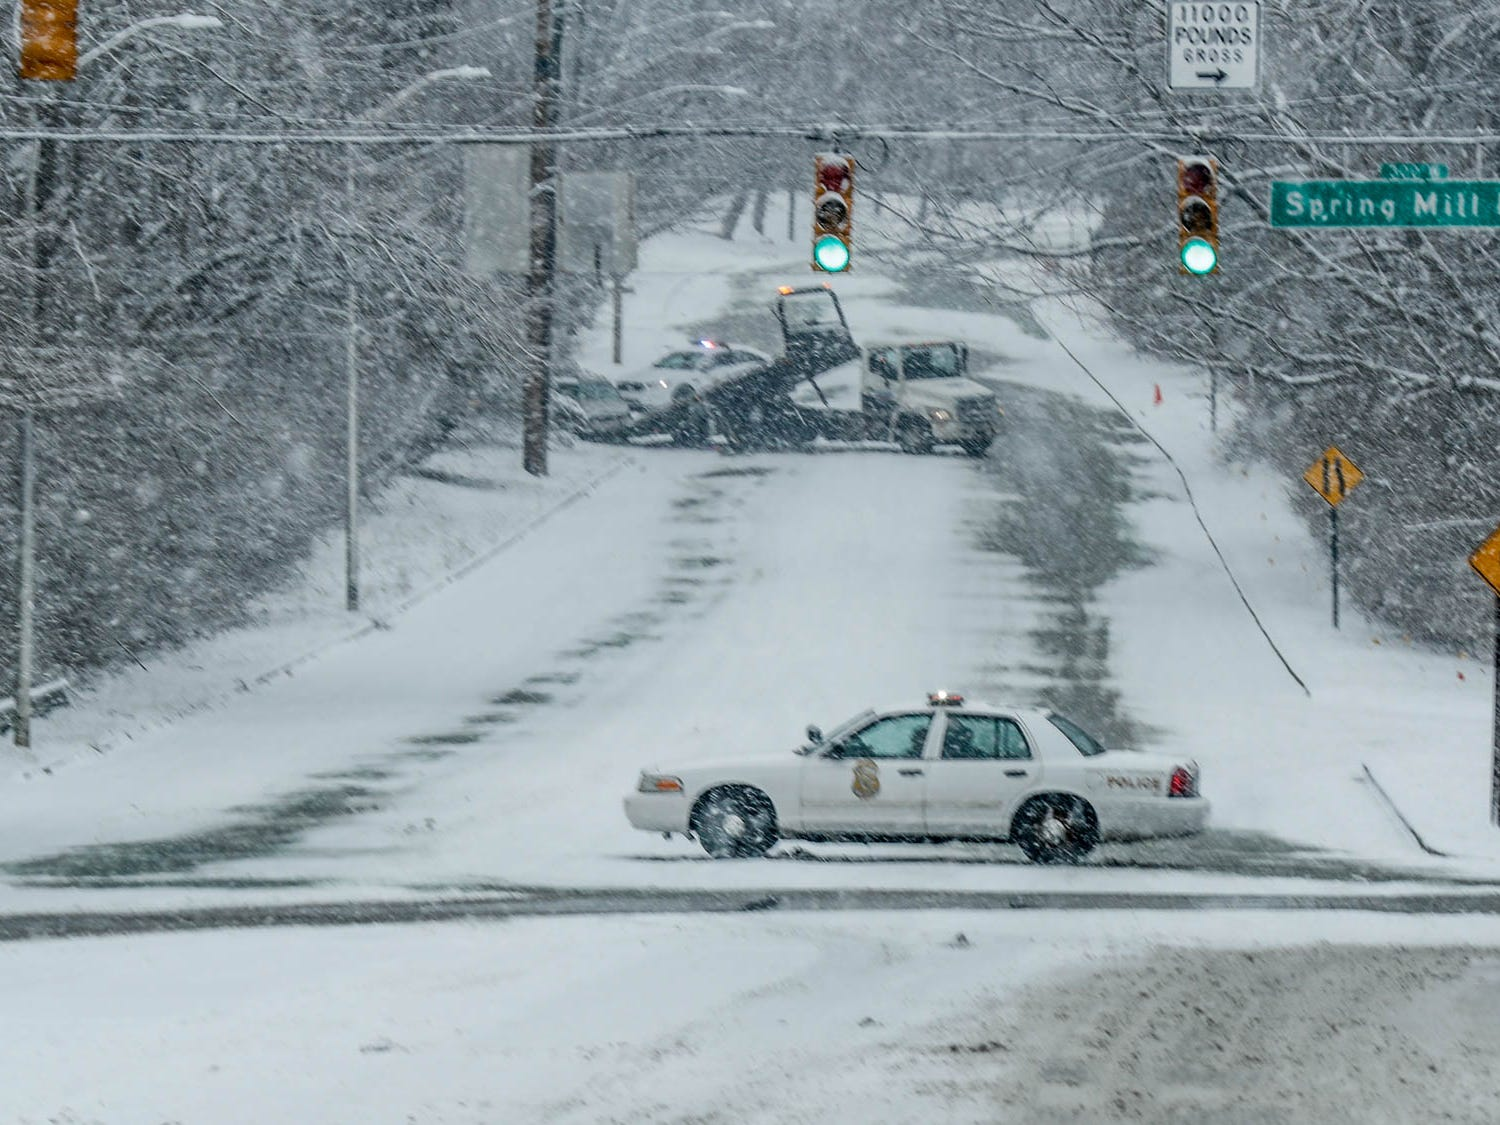 Police block the Kessler Blvd. W. Dr. hill after  a car slid off the road as now fell on Indianapolis on Sunday, Feb. 10, 2019.